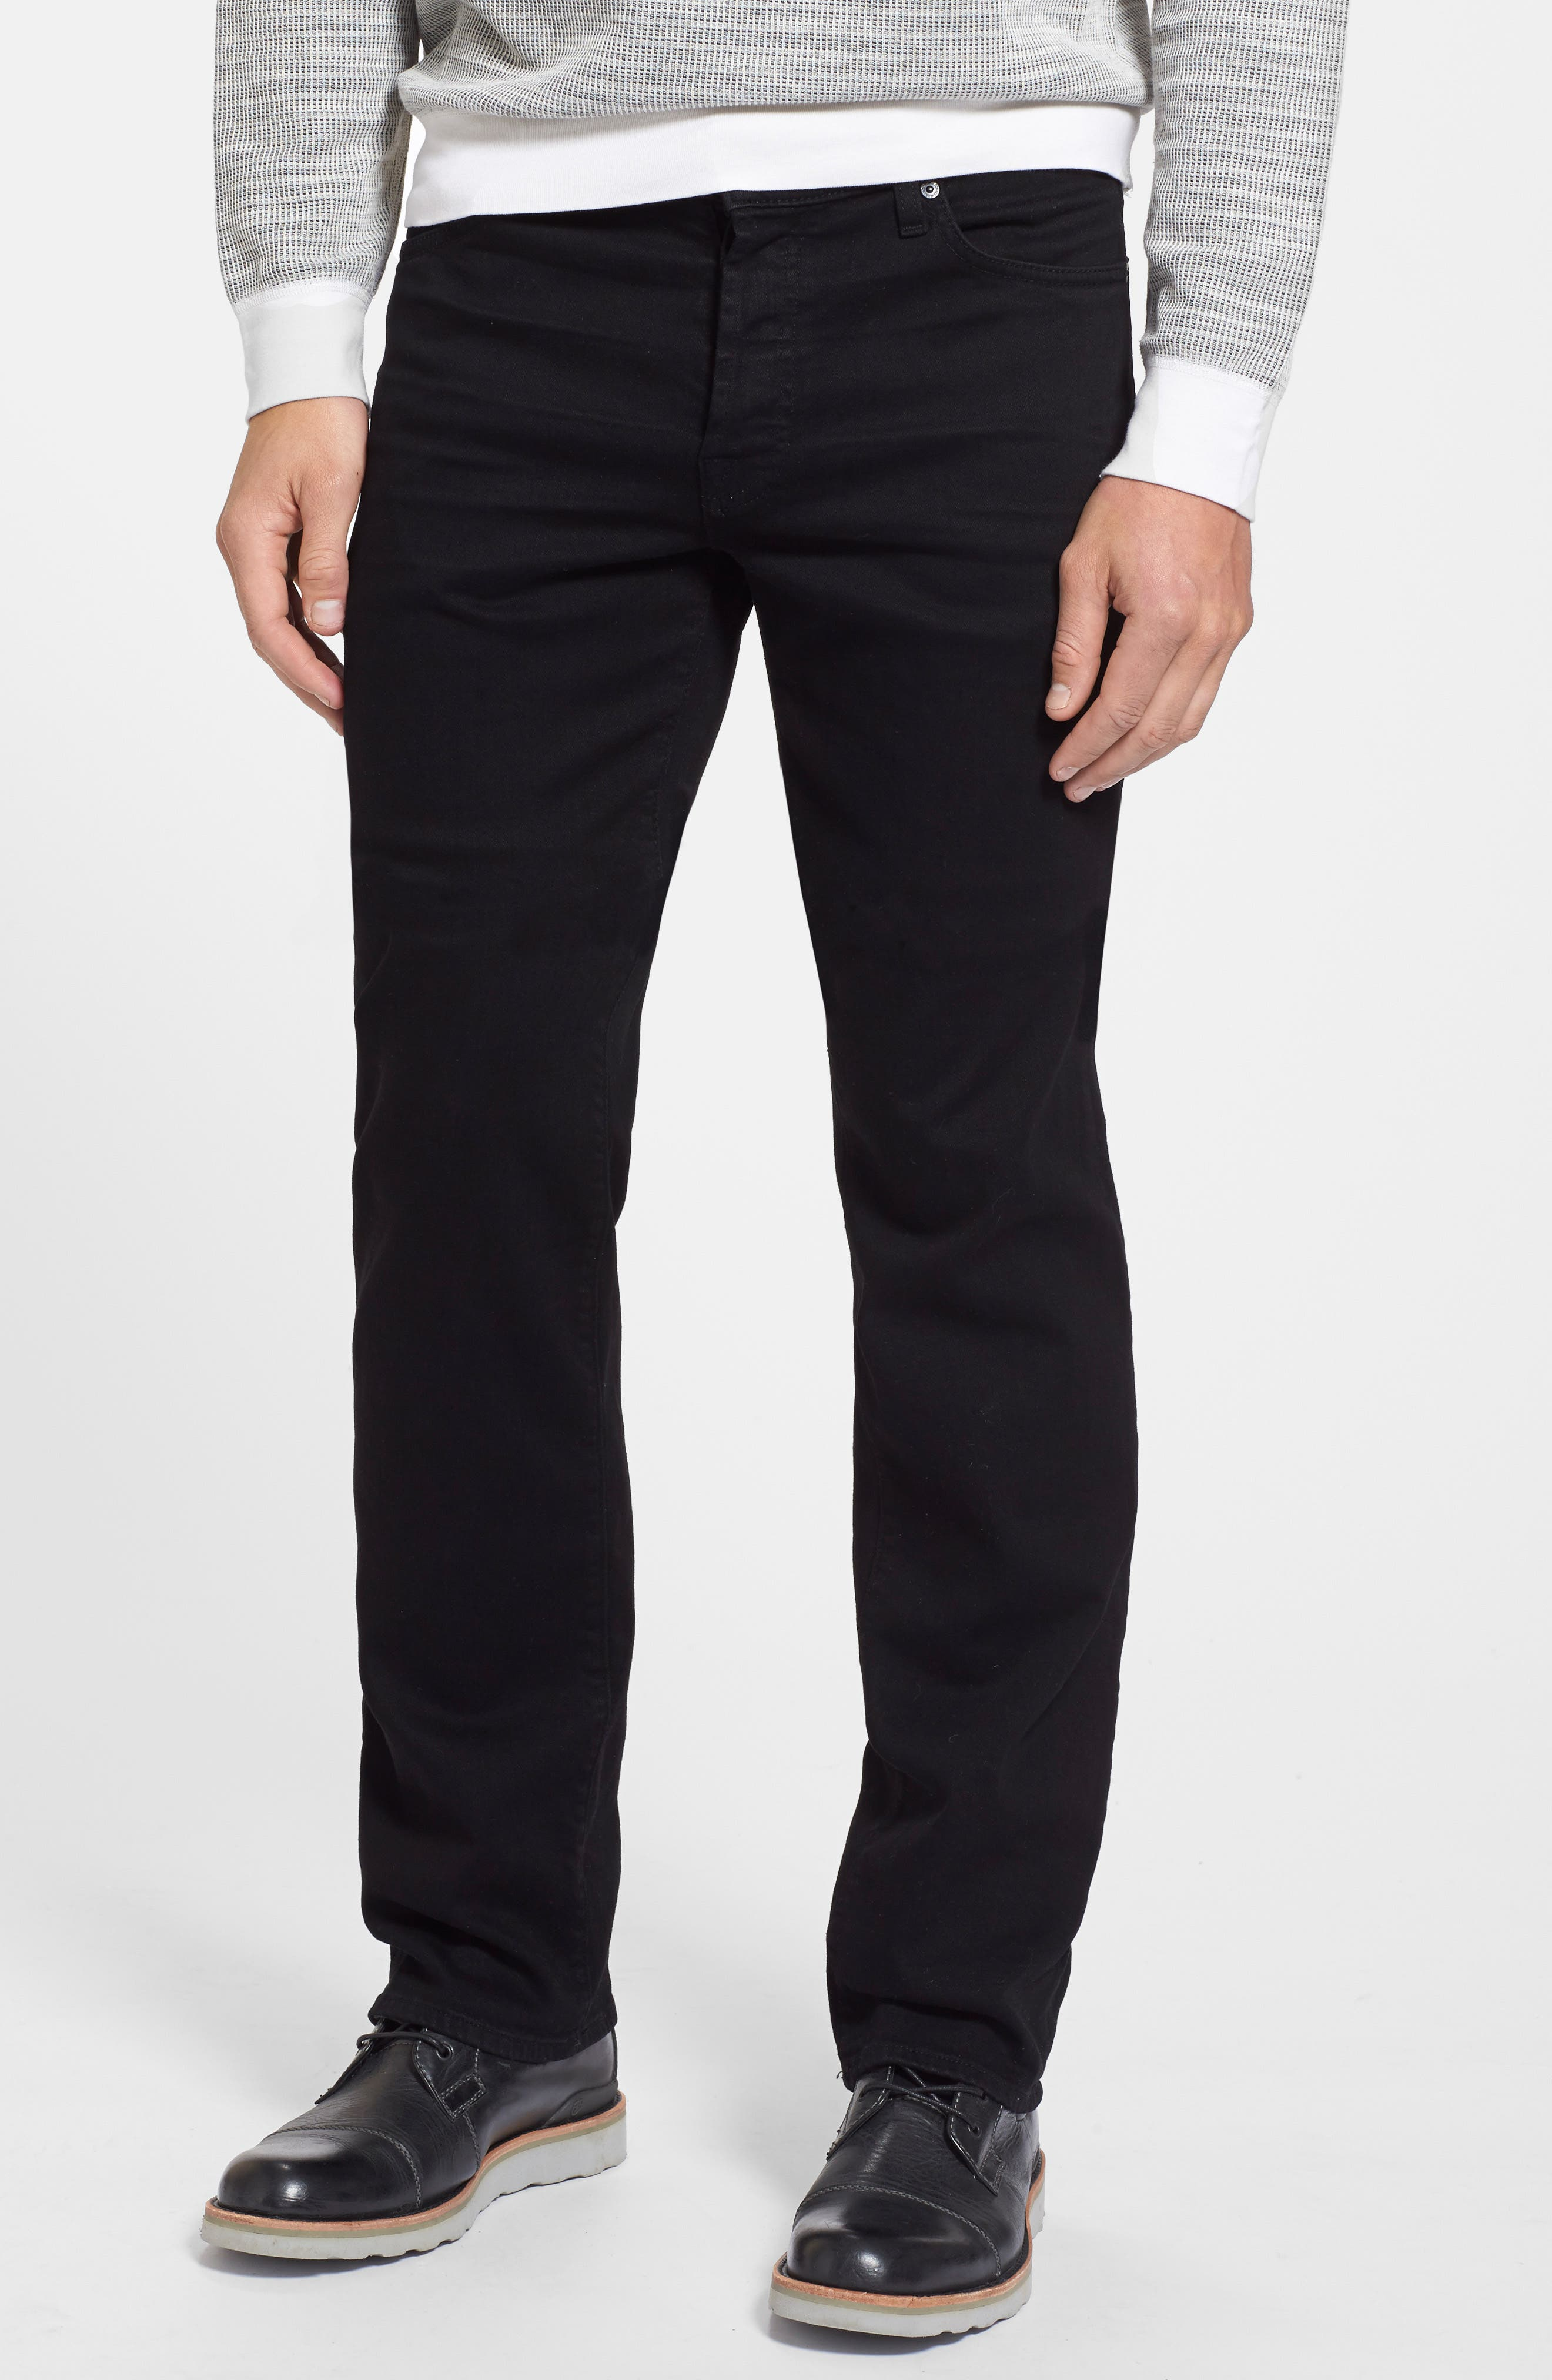 The Standard - Luxe Performance Straight Leg Jeans,                             Alternate thumbnail 2, color,                             004